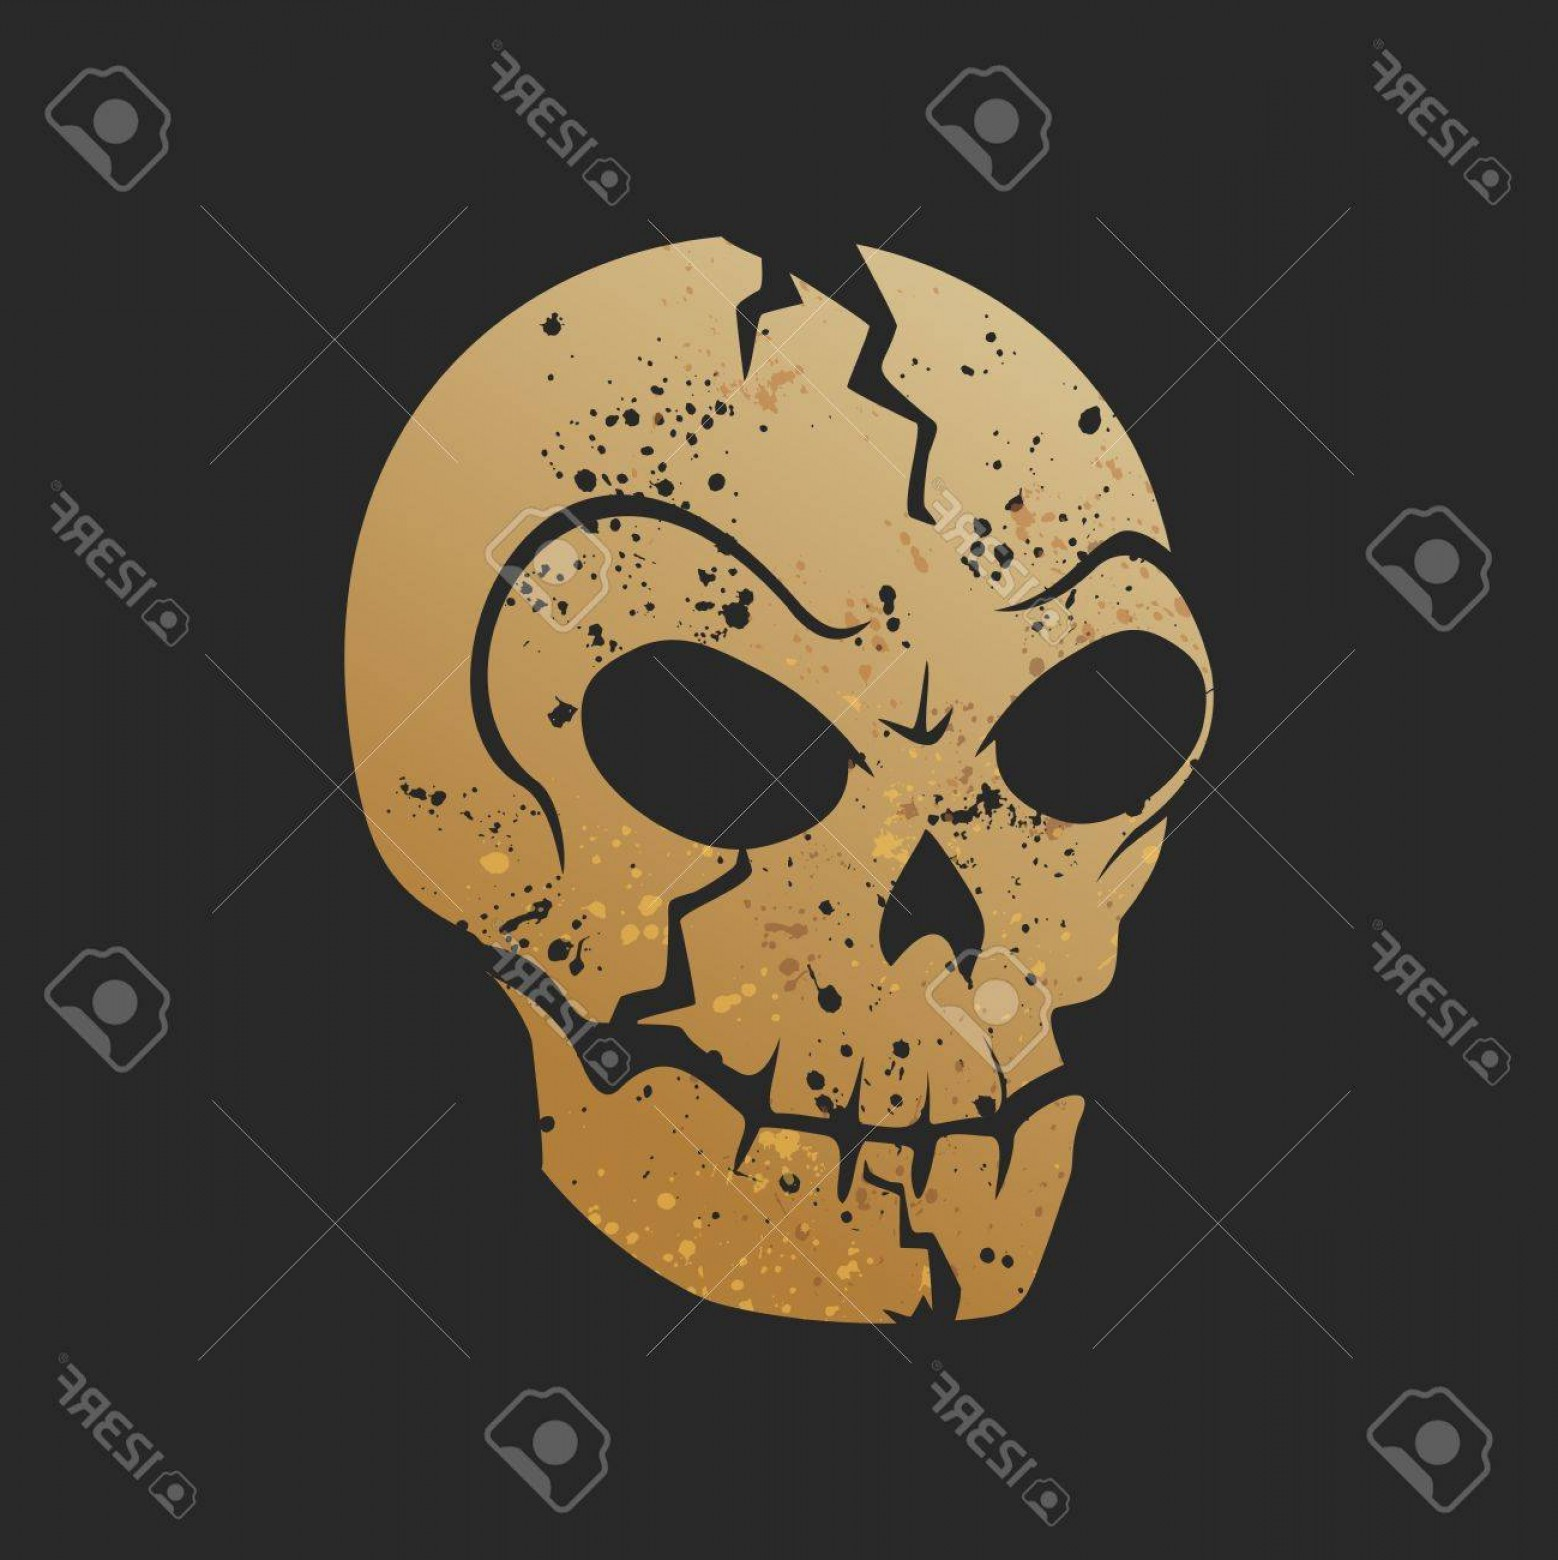 Headless Scary Halloween Skeletons Vectors: Photostock Vector Vector Rustic Creepy Skull Logo Illustration Isolated